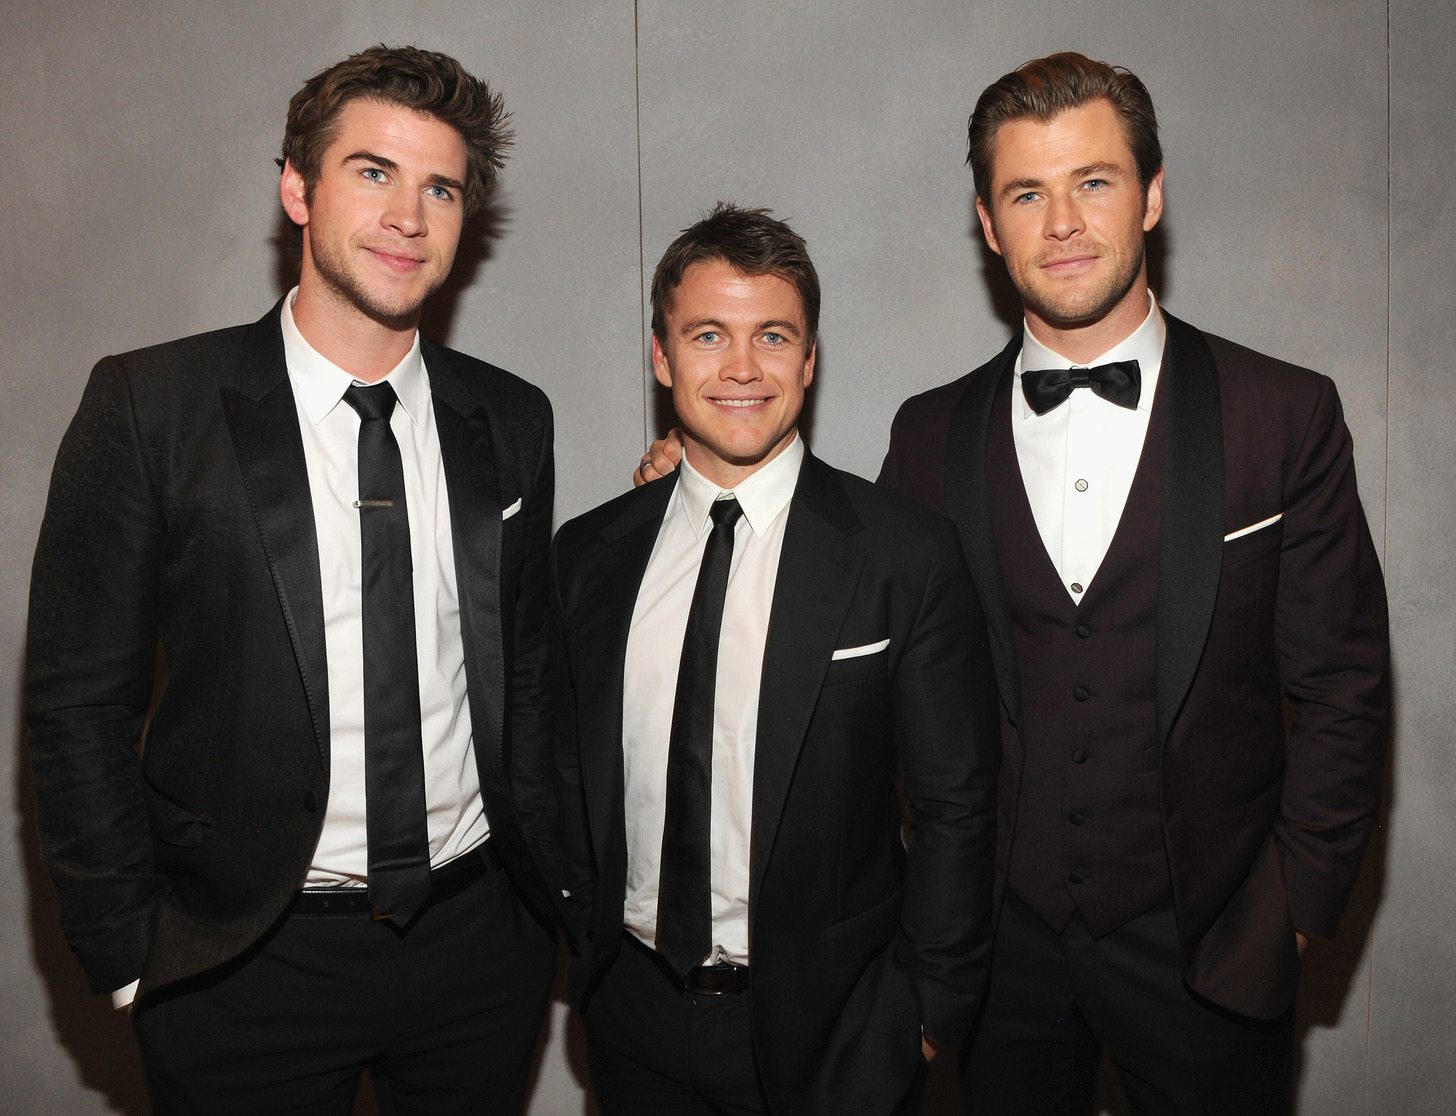 Liam Hemsworth's height 4